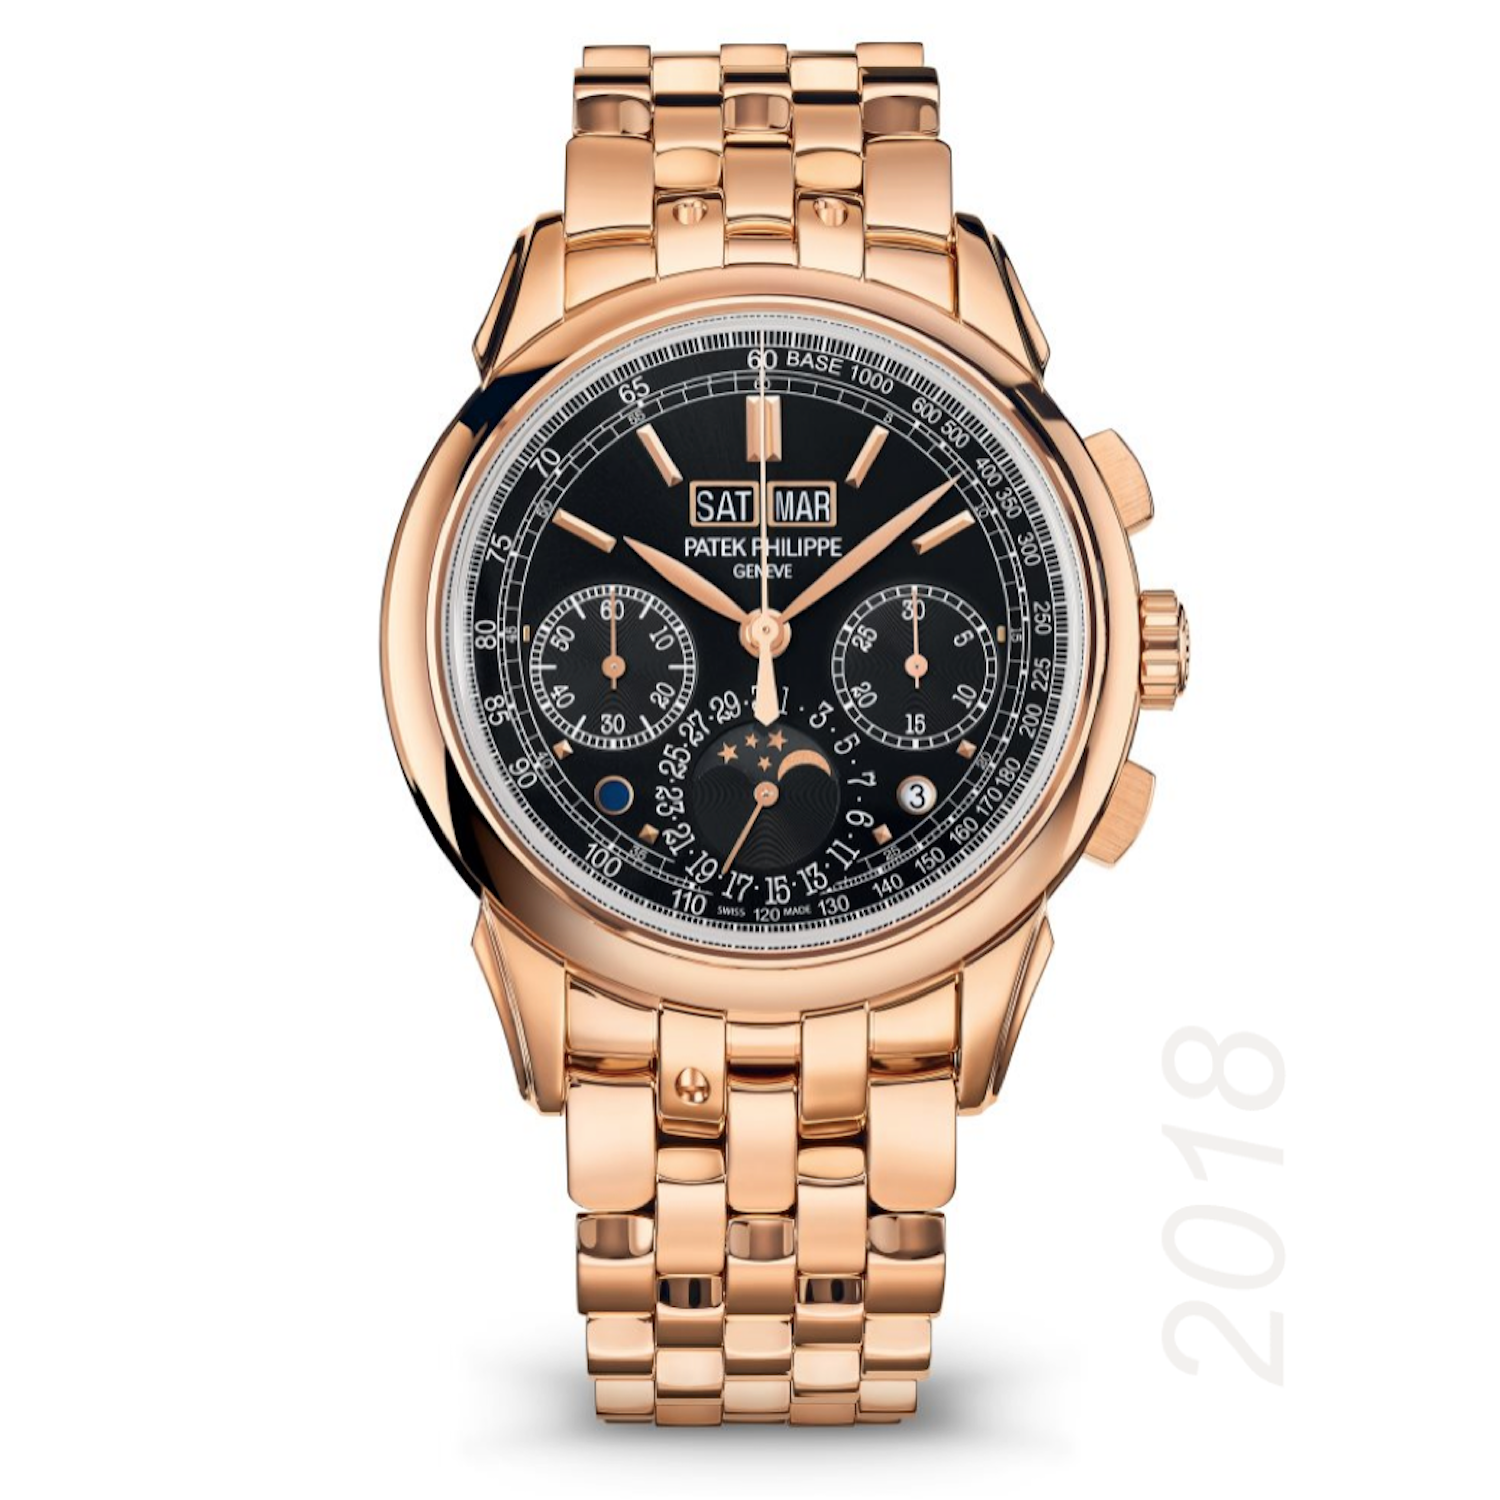 Patek Philippe 5270/1R-001 Men's Rose Gold Perpetual Calendar Chronograph  with Black Dial - Grand Complications | de Boulle Diamond & Jewelry |  Luxury watches for men, Mens rose gold watch, Patek philippe